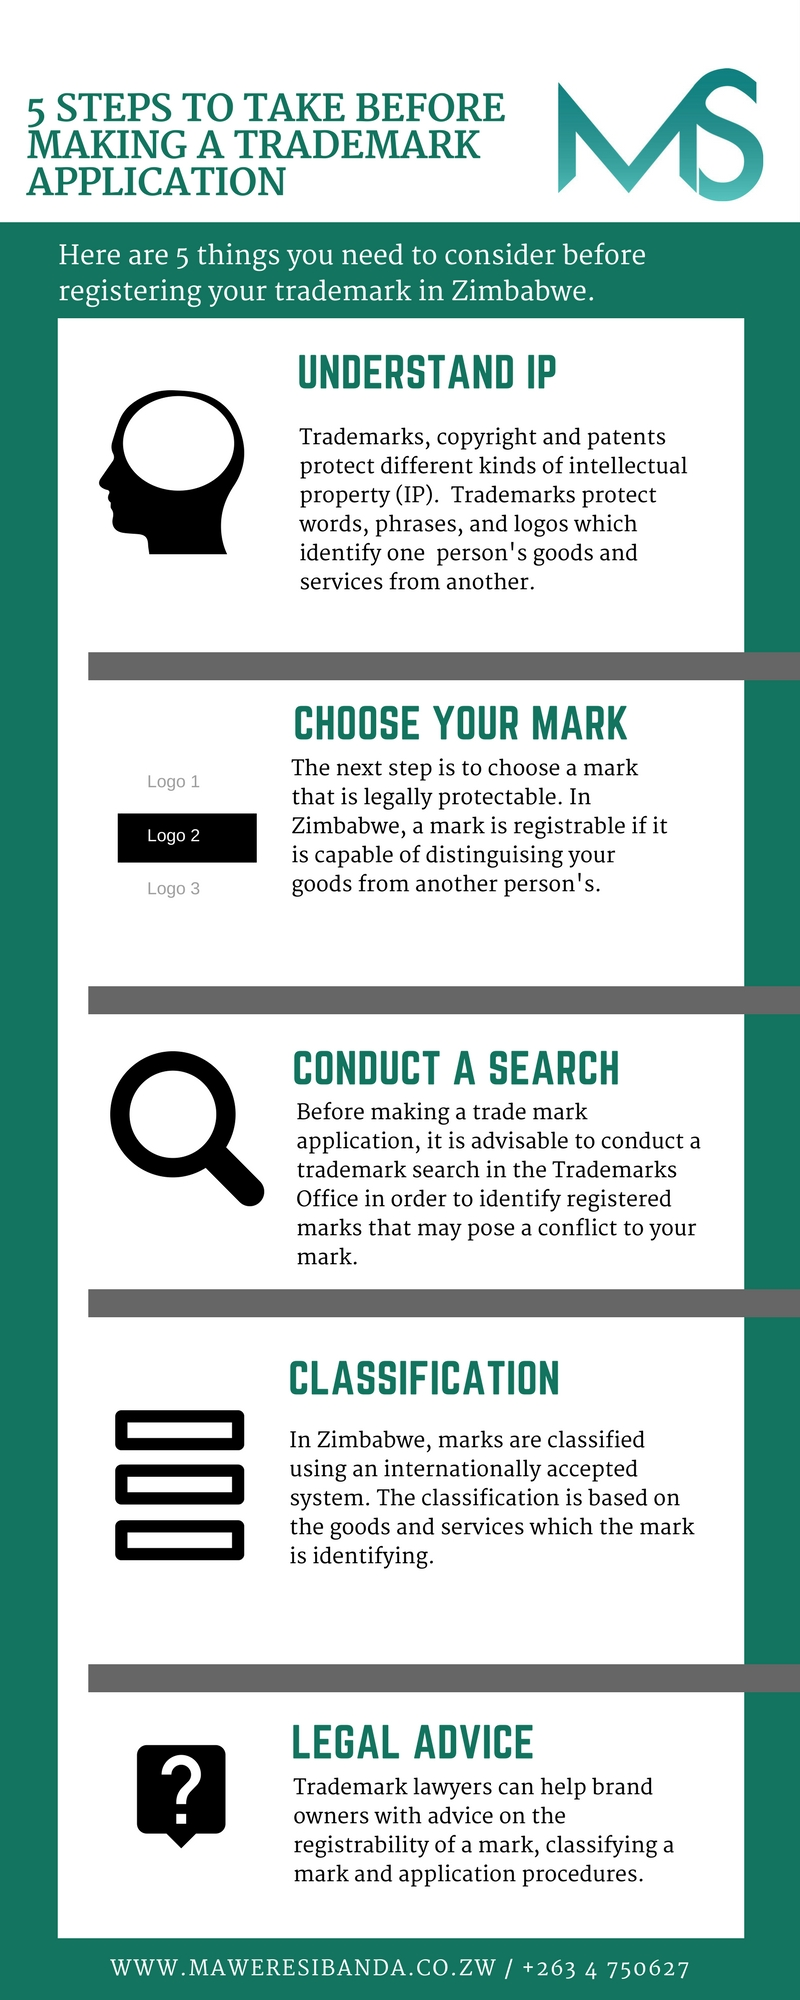 5-steps-to-take-before-making-a-trademark-application